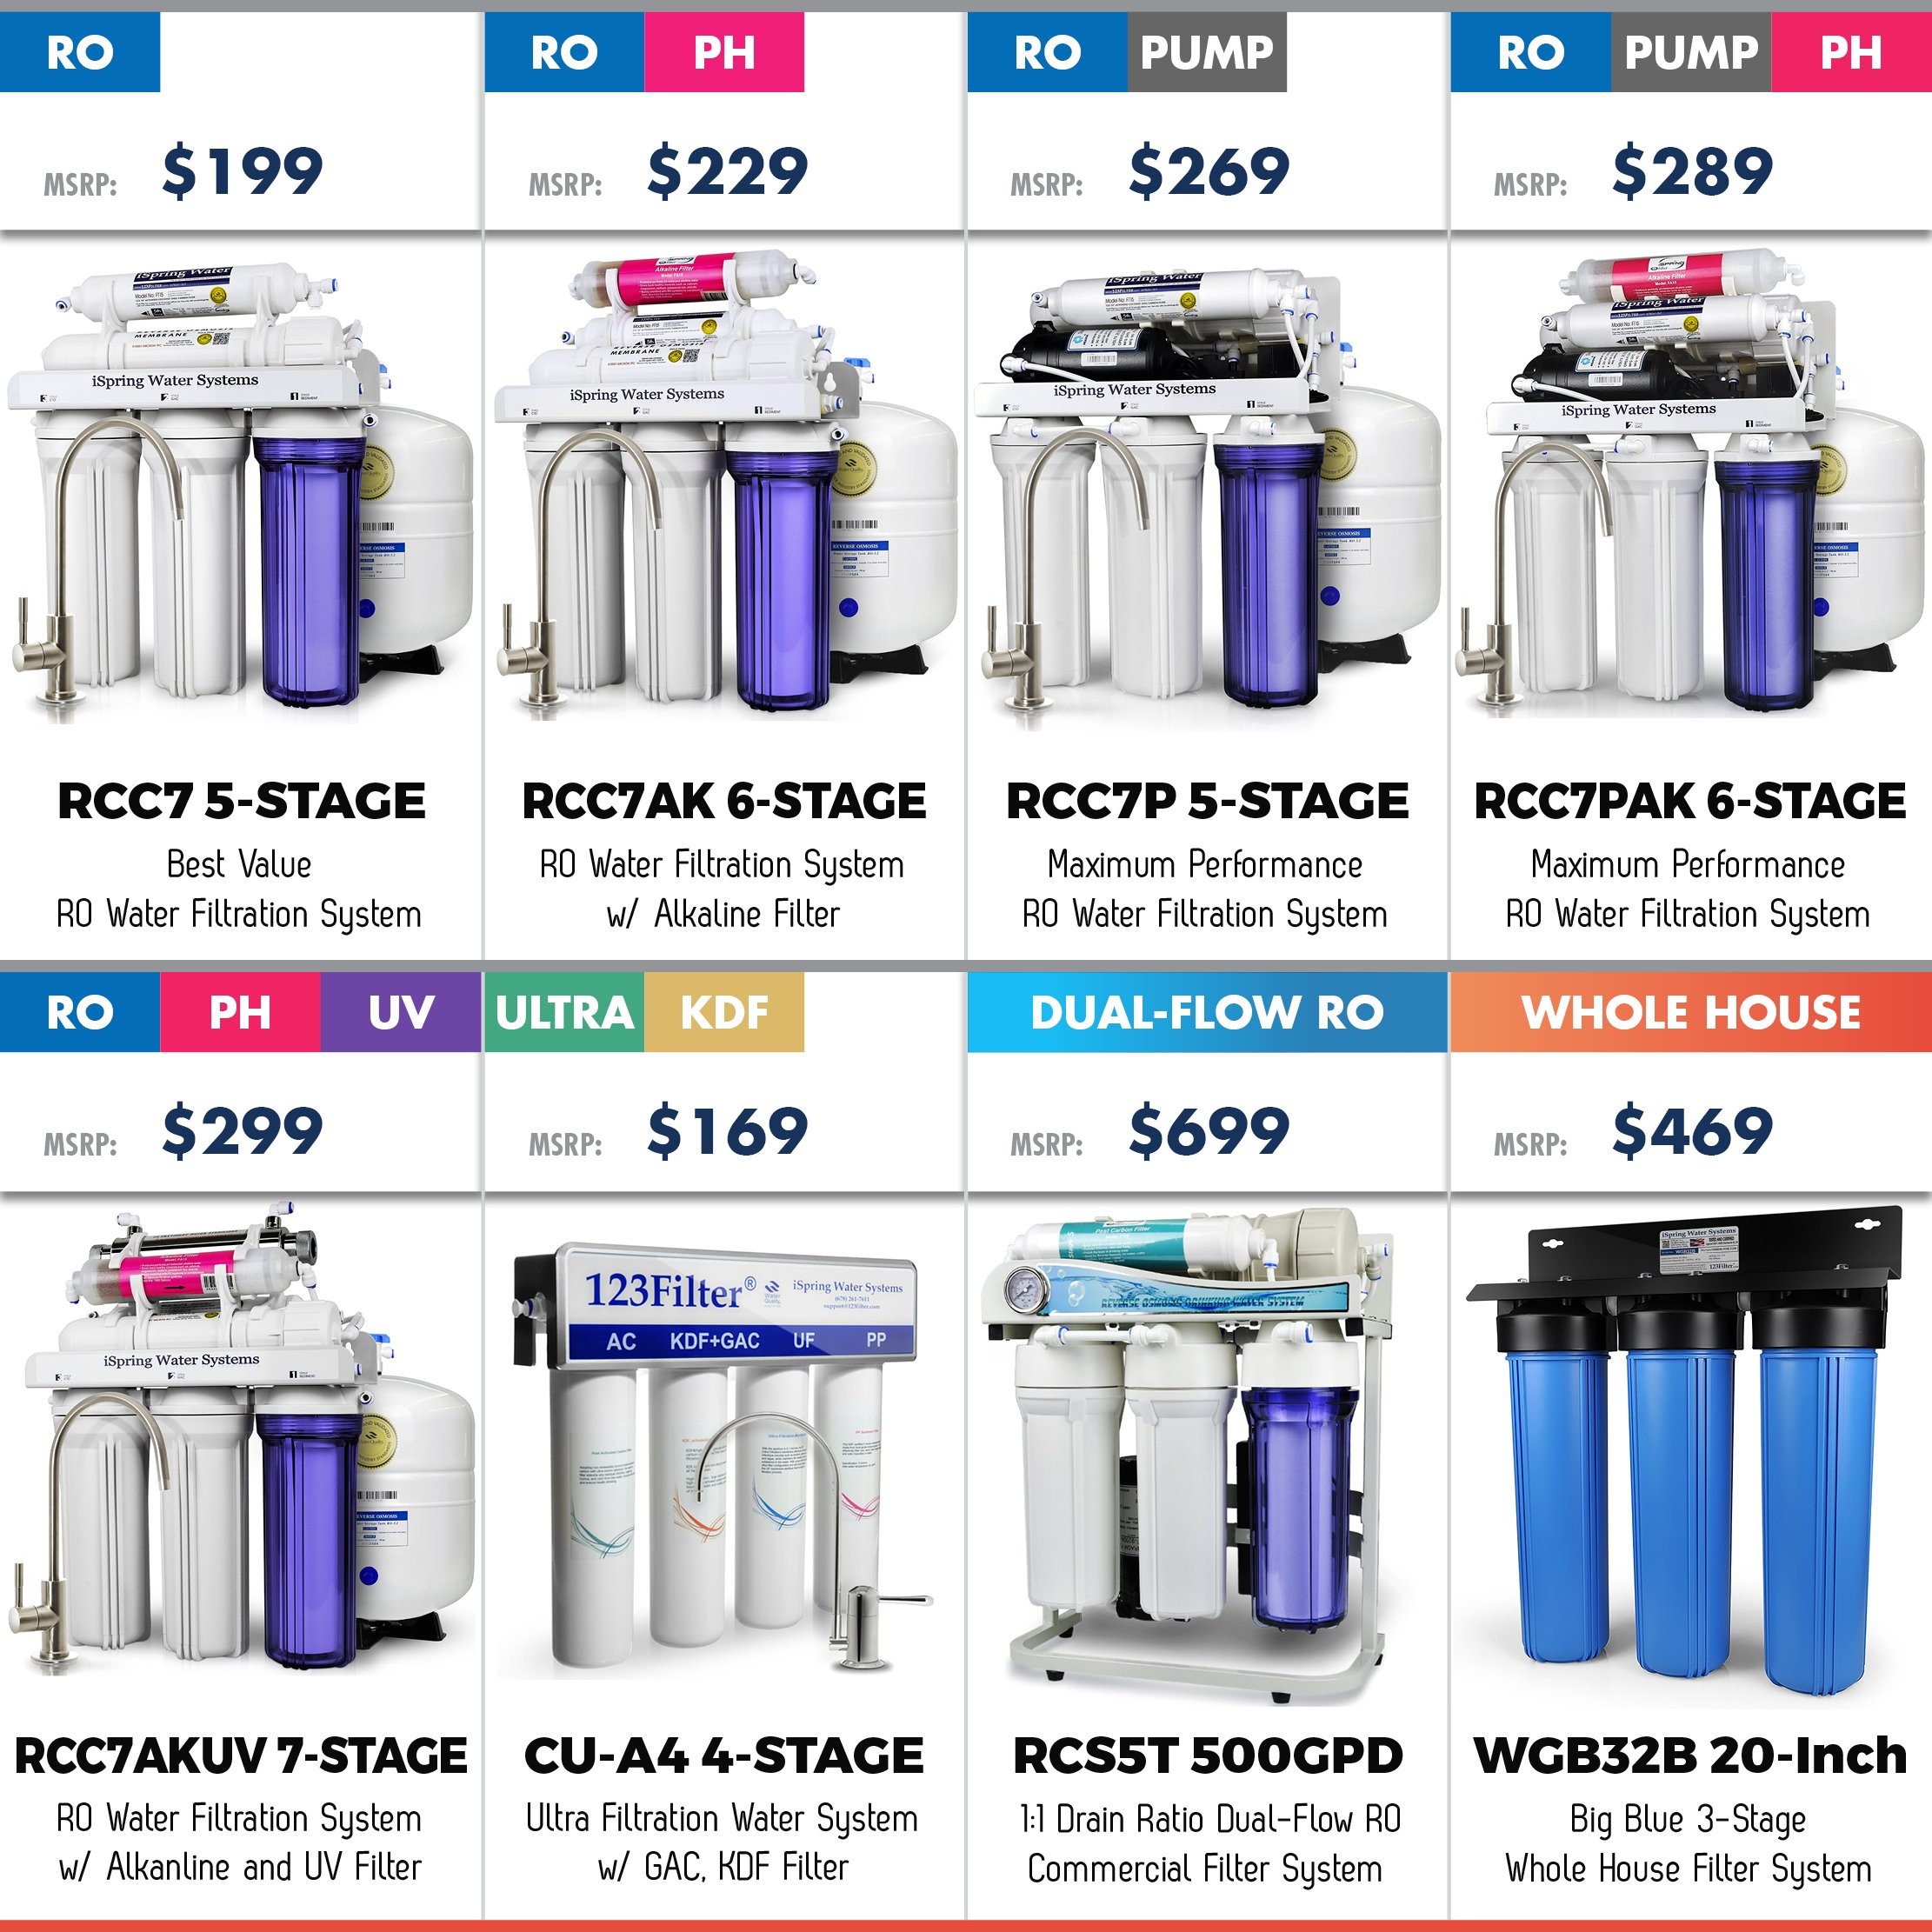 iSpring RCC7AK 6-Stage Under-Sink Reverse Osmosis Drinking Water Filtration System with Alkaline Remineralization Filter - 75 GPD by iSpring (Image #6)